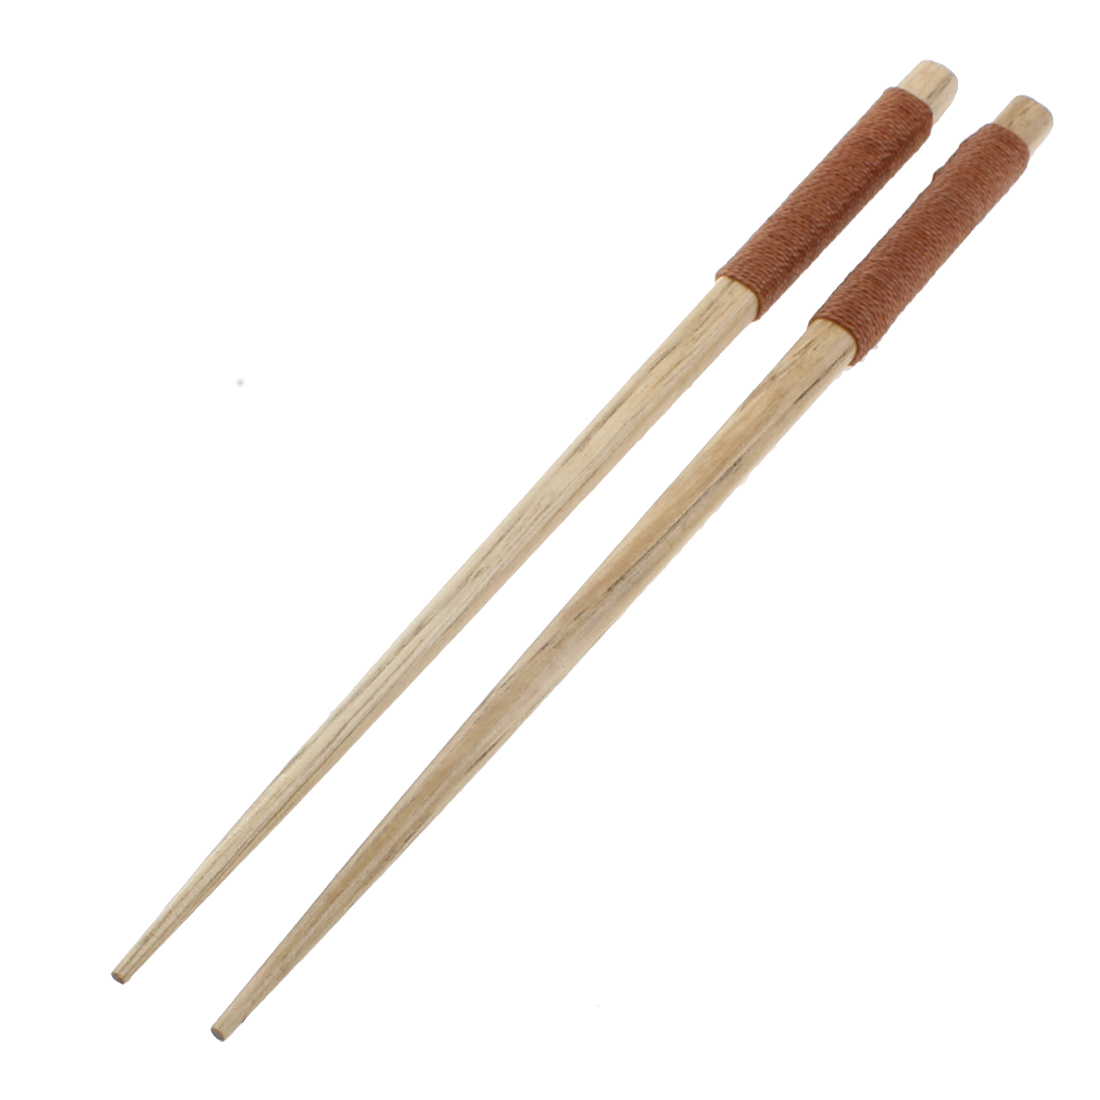 Home Kitchen Tableware Twine Nonslip Handle Wooden Chopsticks 20cm Length Pair